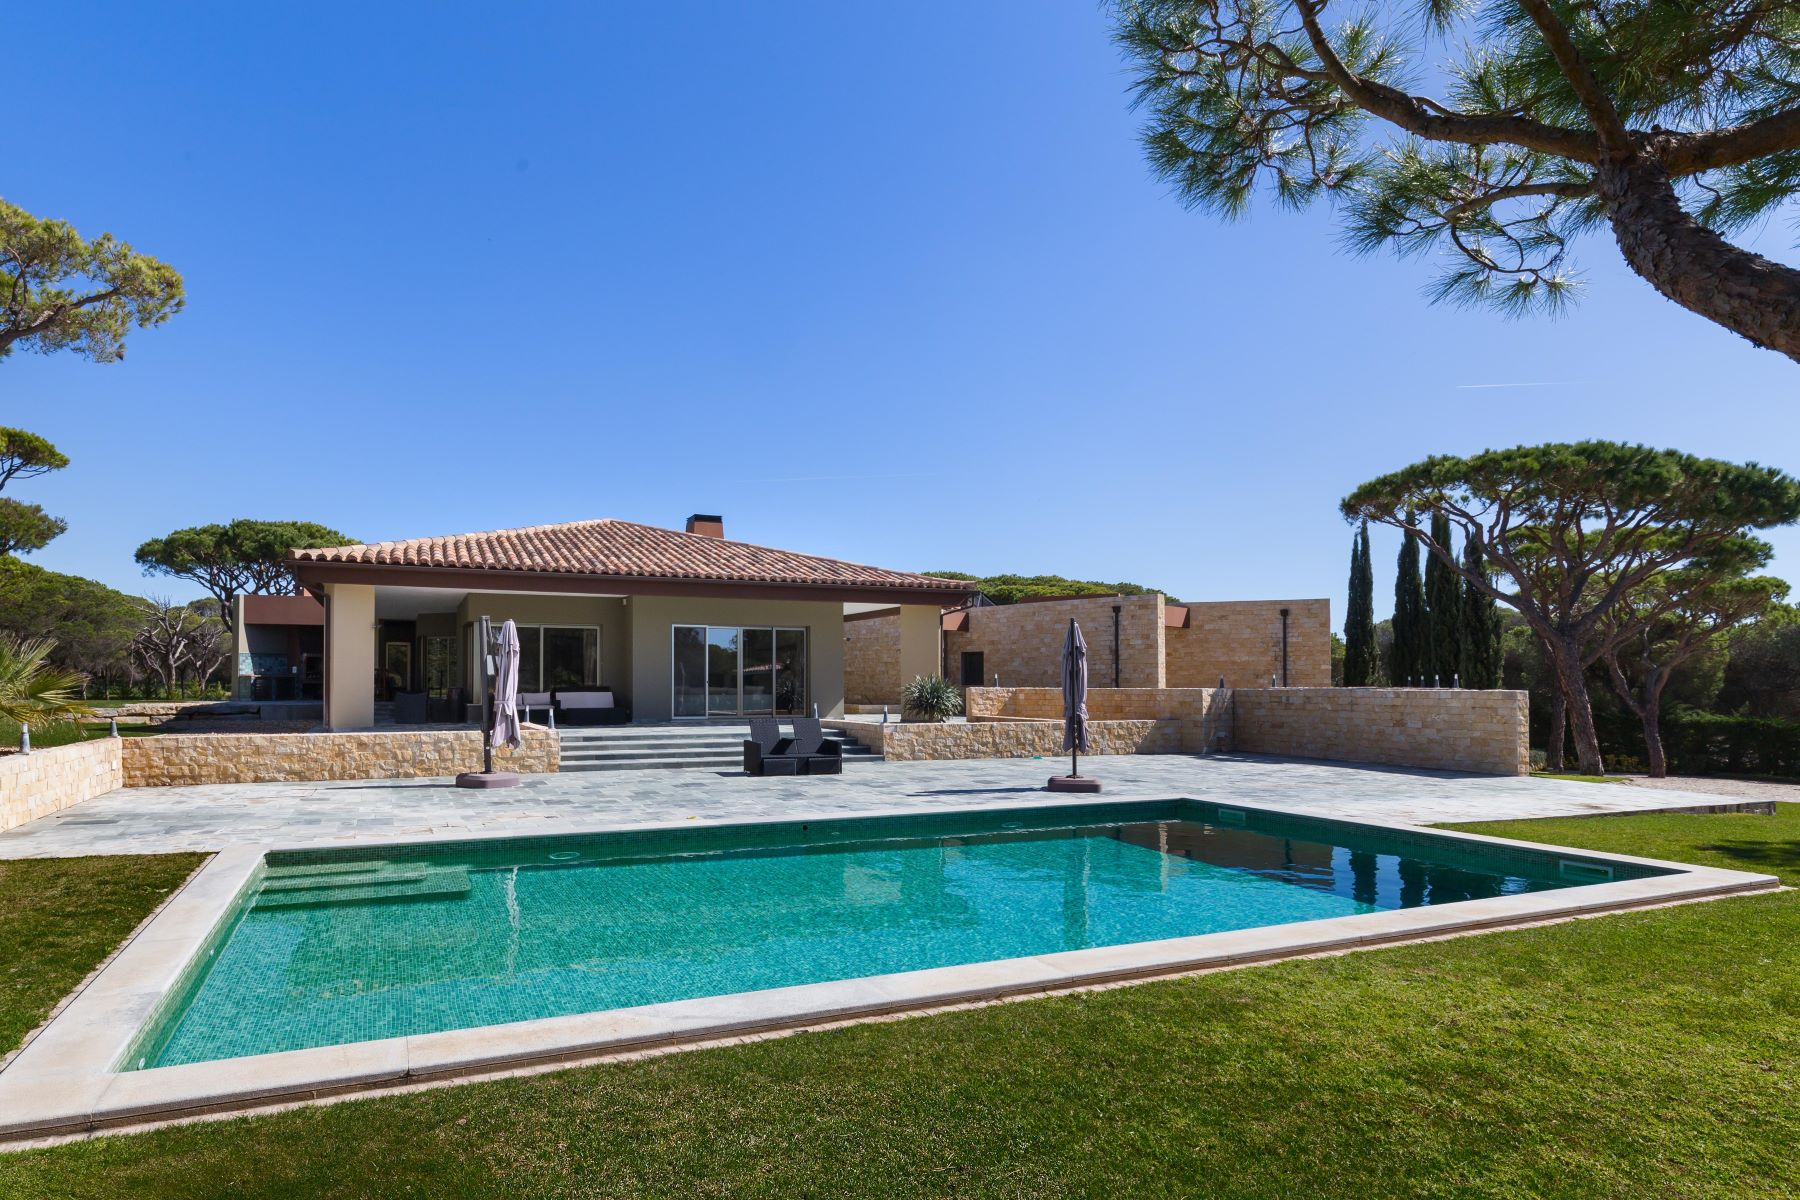 Single Family Home for Sale at Detached house, 7 bedrooms, for Sale Loule, Algarve, Portugal